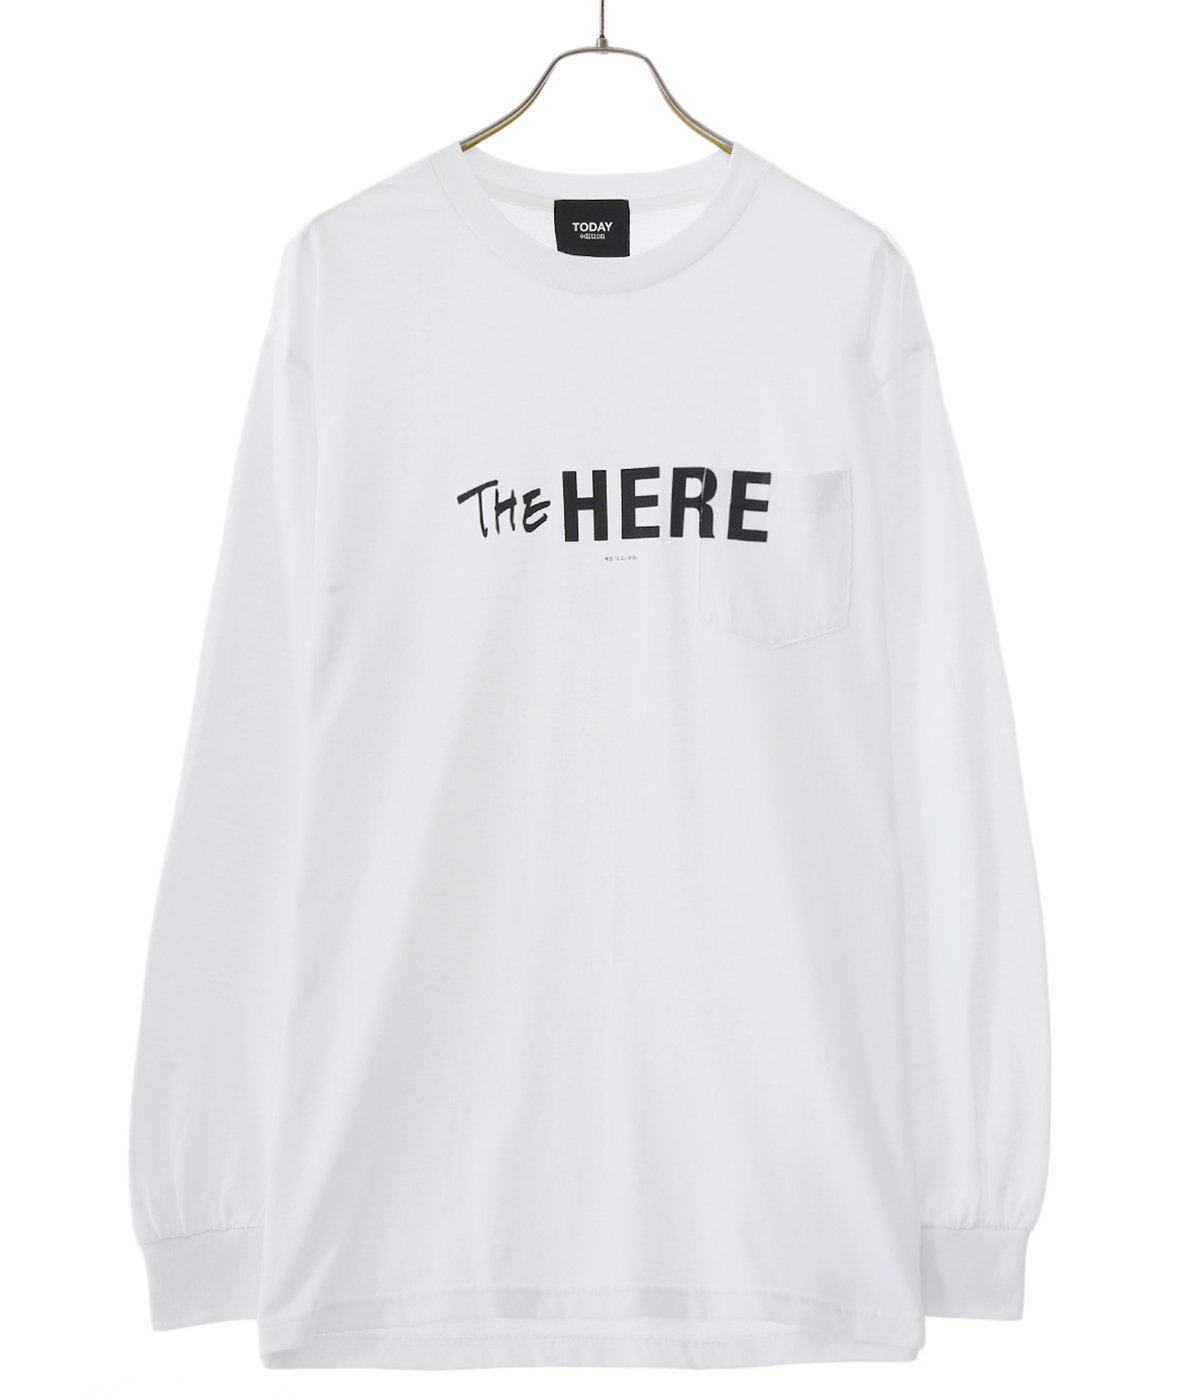 【ONLY ARK】別注 THE HERE LS Pocket Tee